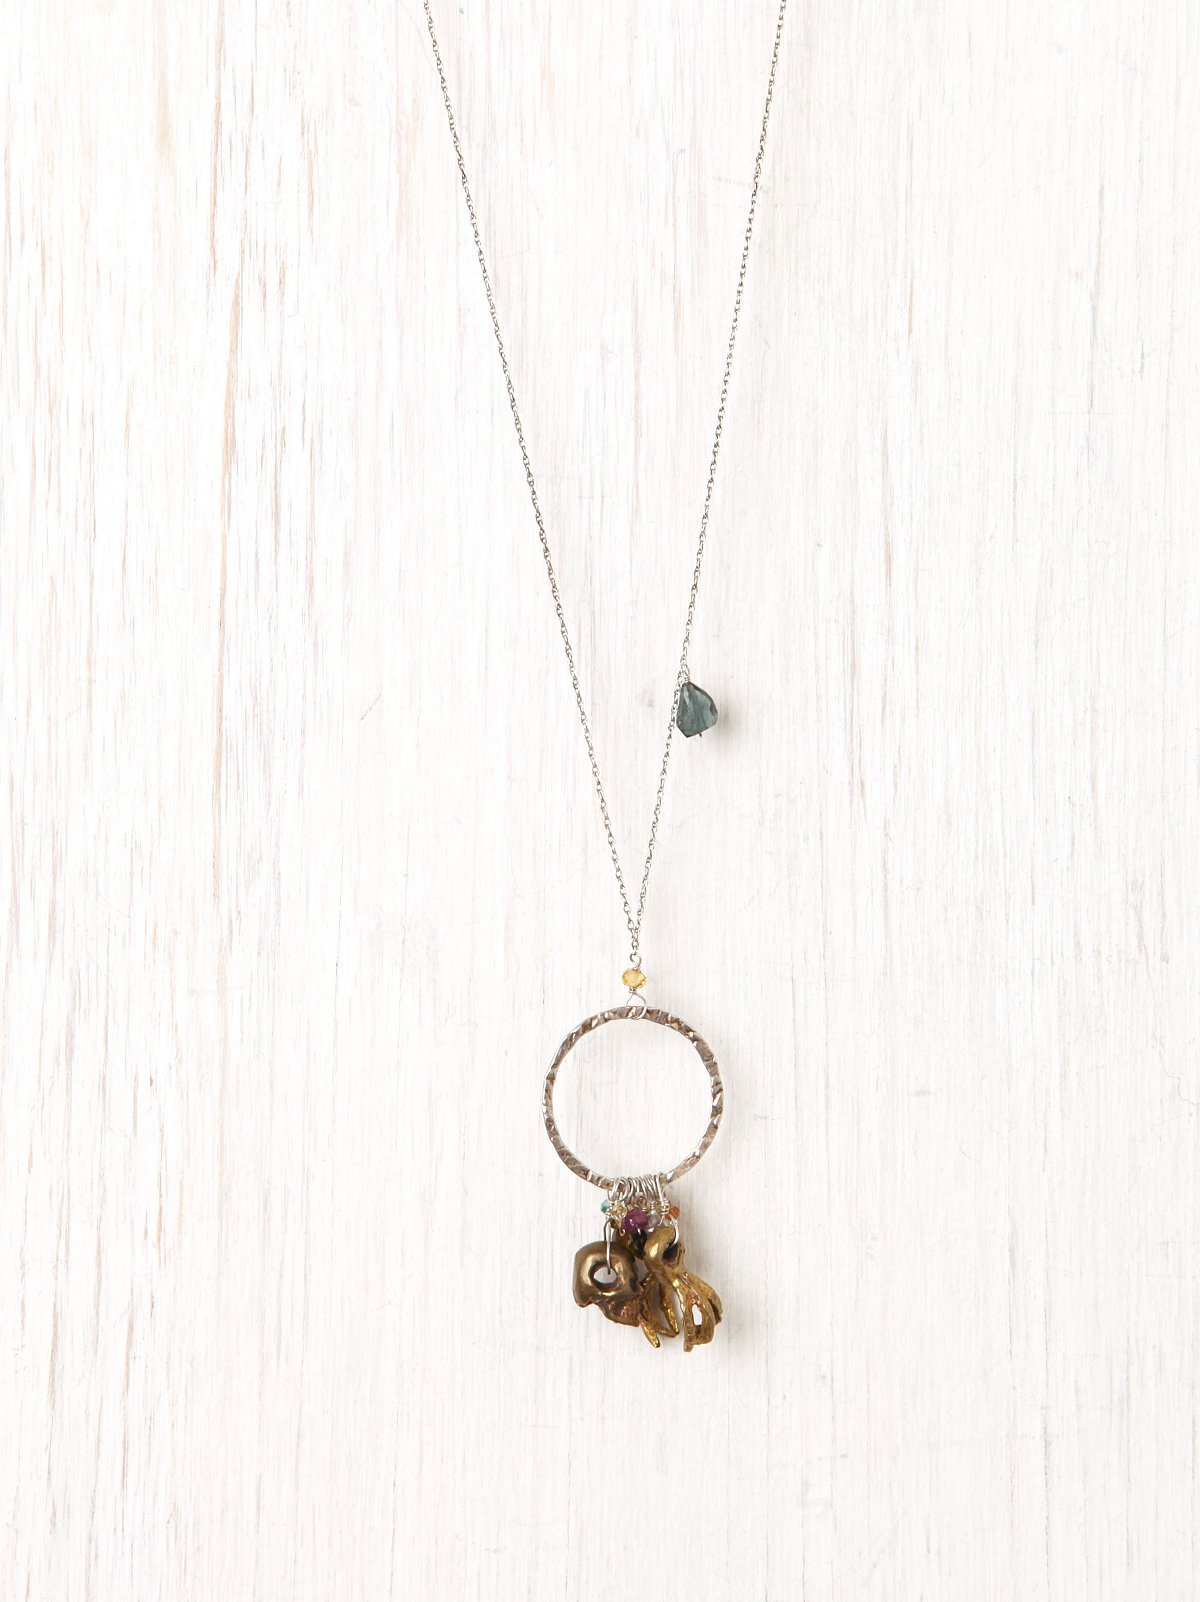 Skull and Claw Charm Necklace